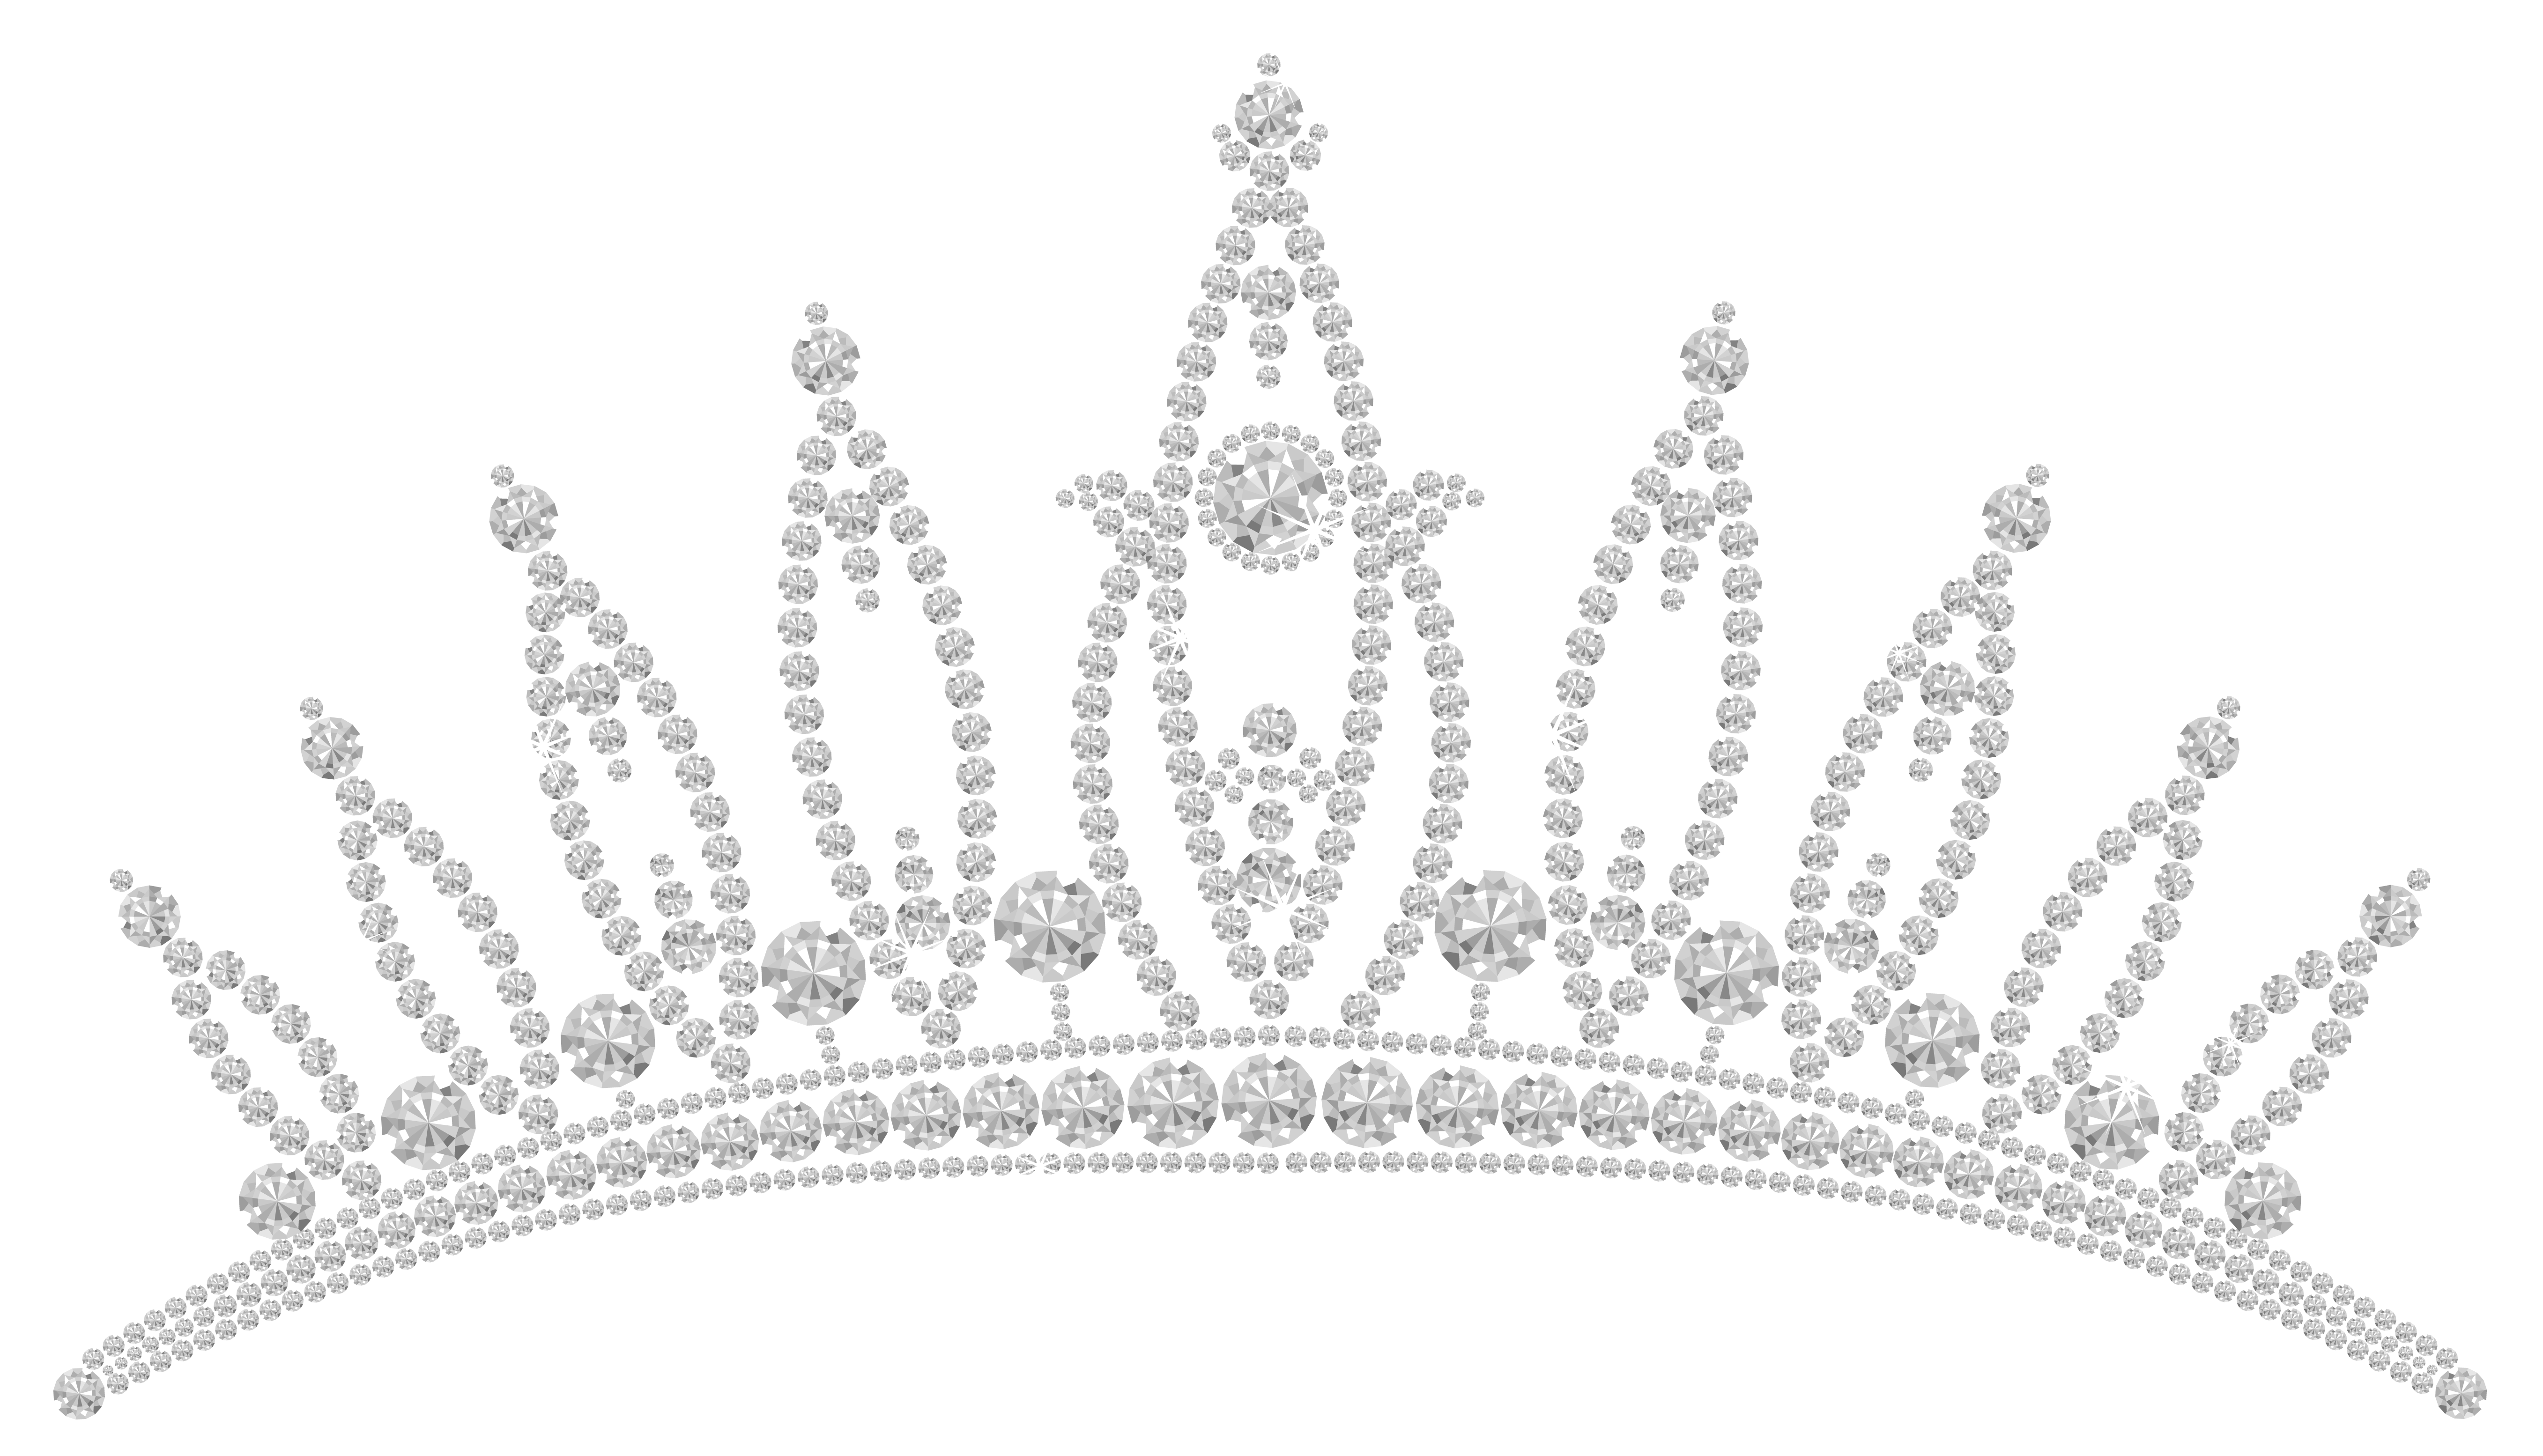 Diamond crown clipart jpg transparent library Diamond Tiara PNG Clipart Picture | Gallery Yopriceville - High ... jpg transparent library